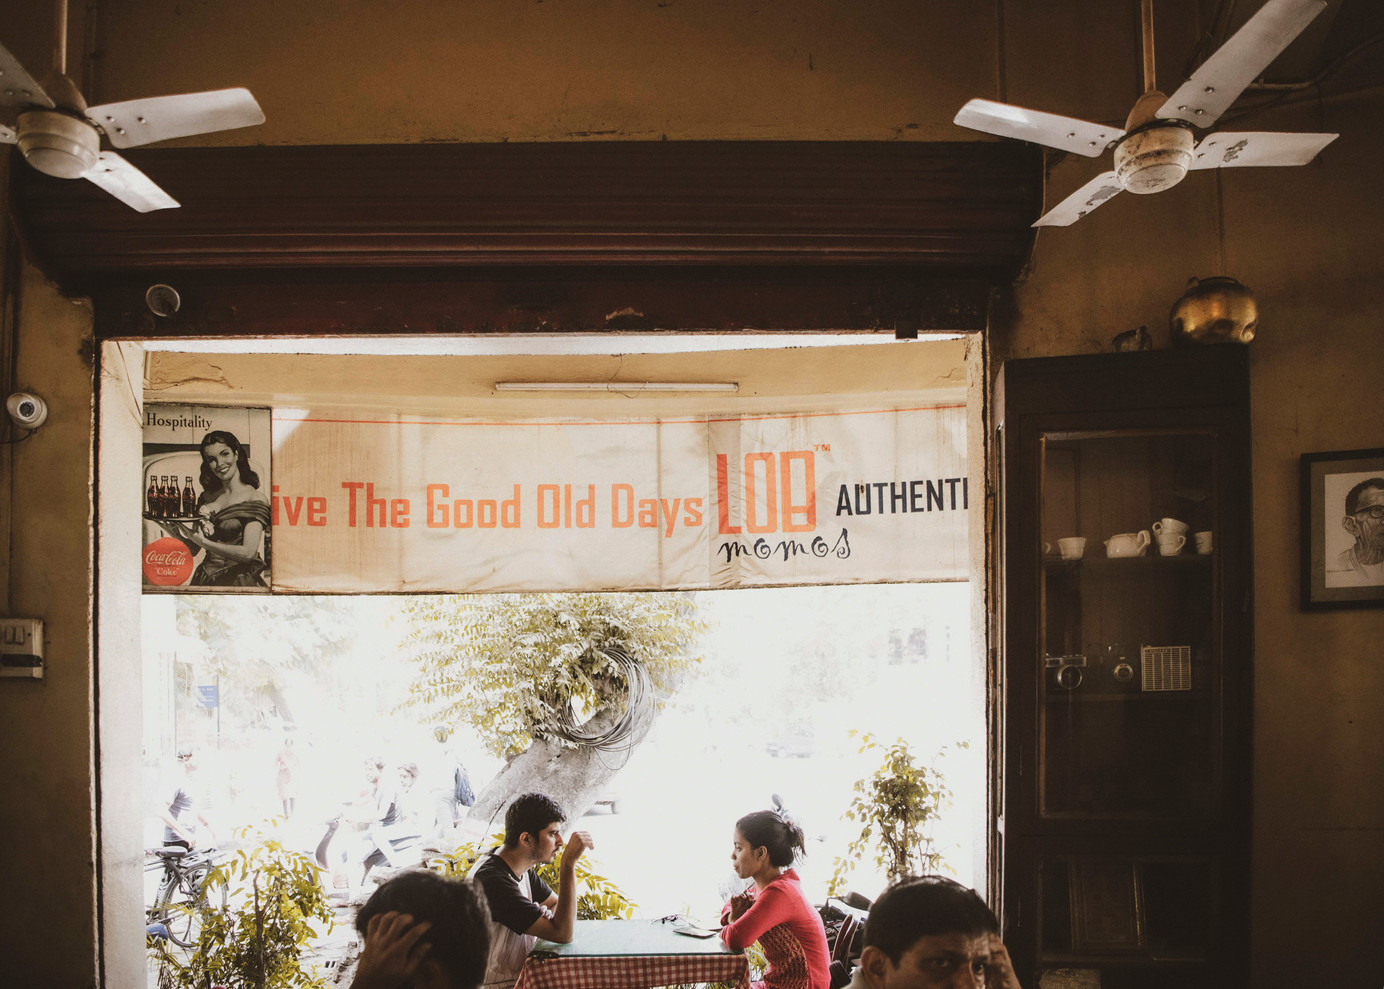 A banner on the glass window of Light of Bharat Cafe reminds customers to 'relive the good old days'. Over the years, the Irani cafes have become more than just cafes; they are nostalgic portals through which you are transported to Bombay of the past.